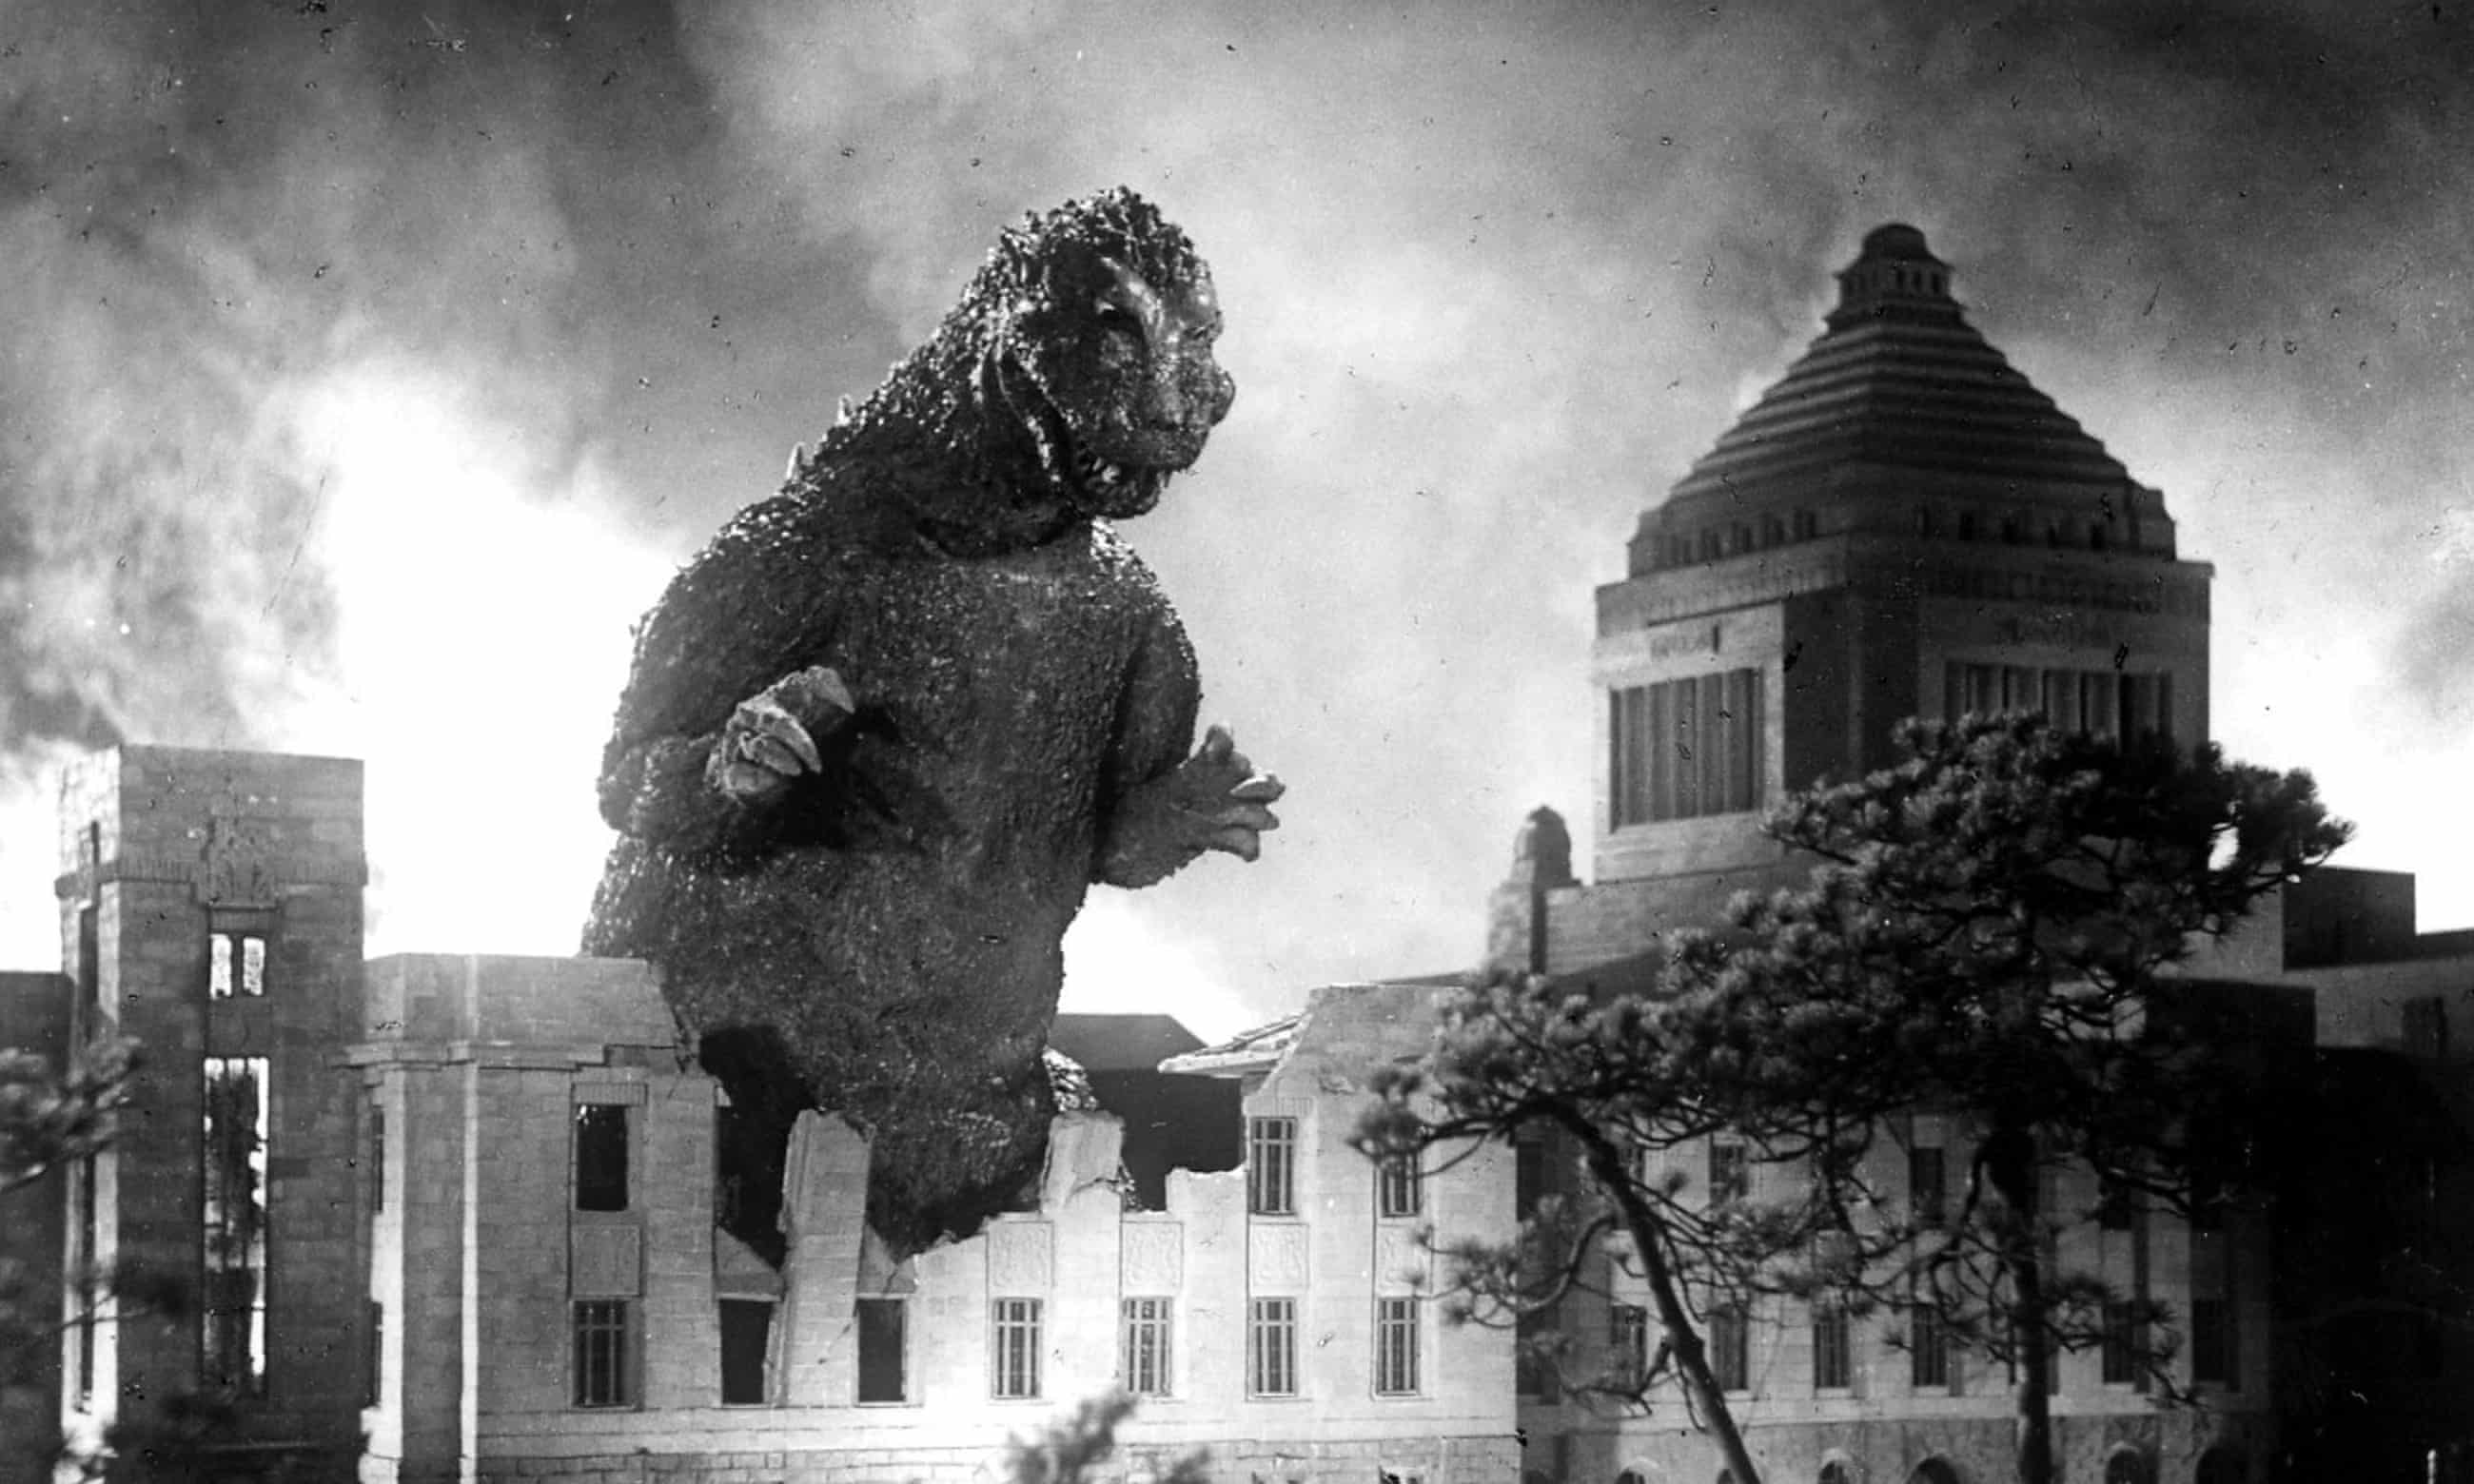 Godzilla: the early years - in pictures